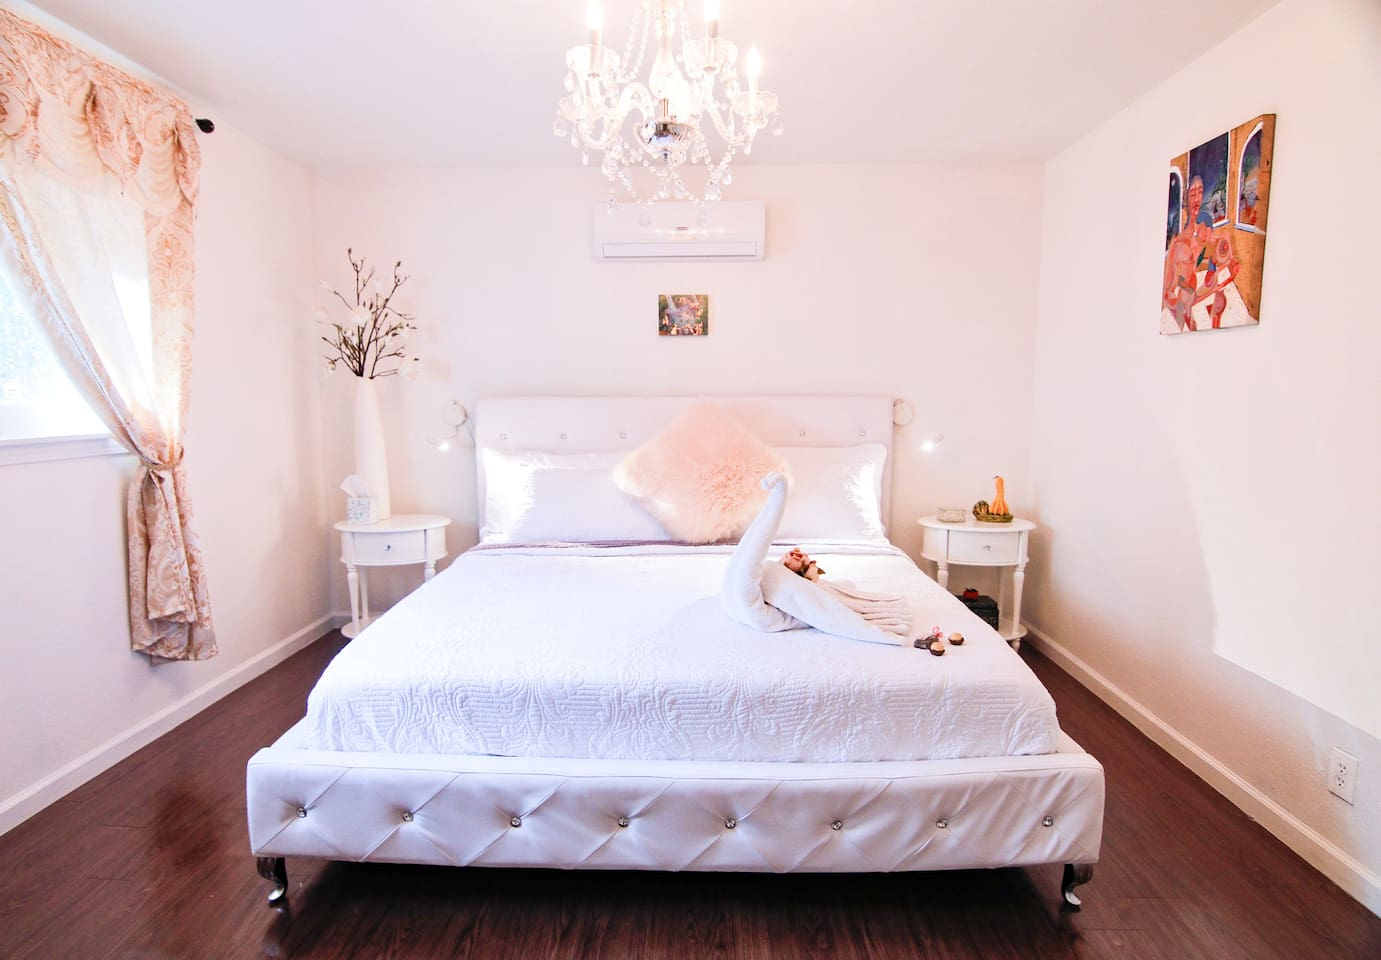 bedroom 1 with king size bed and bedding